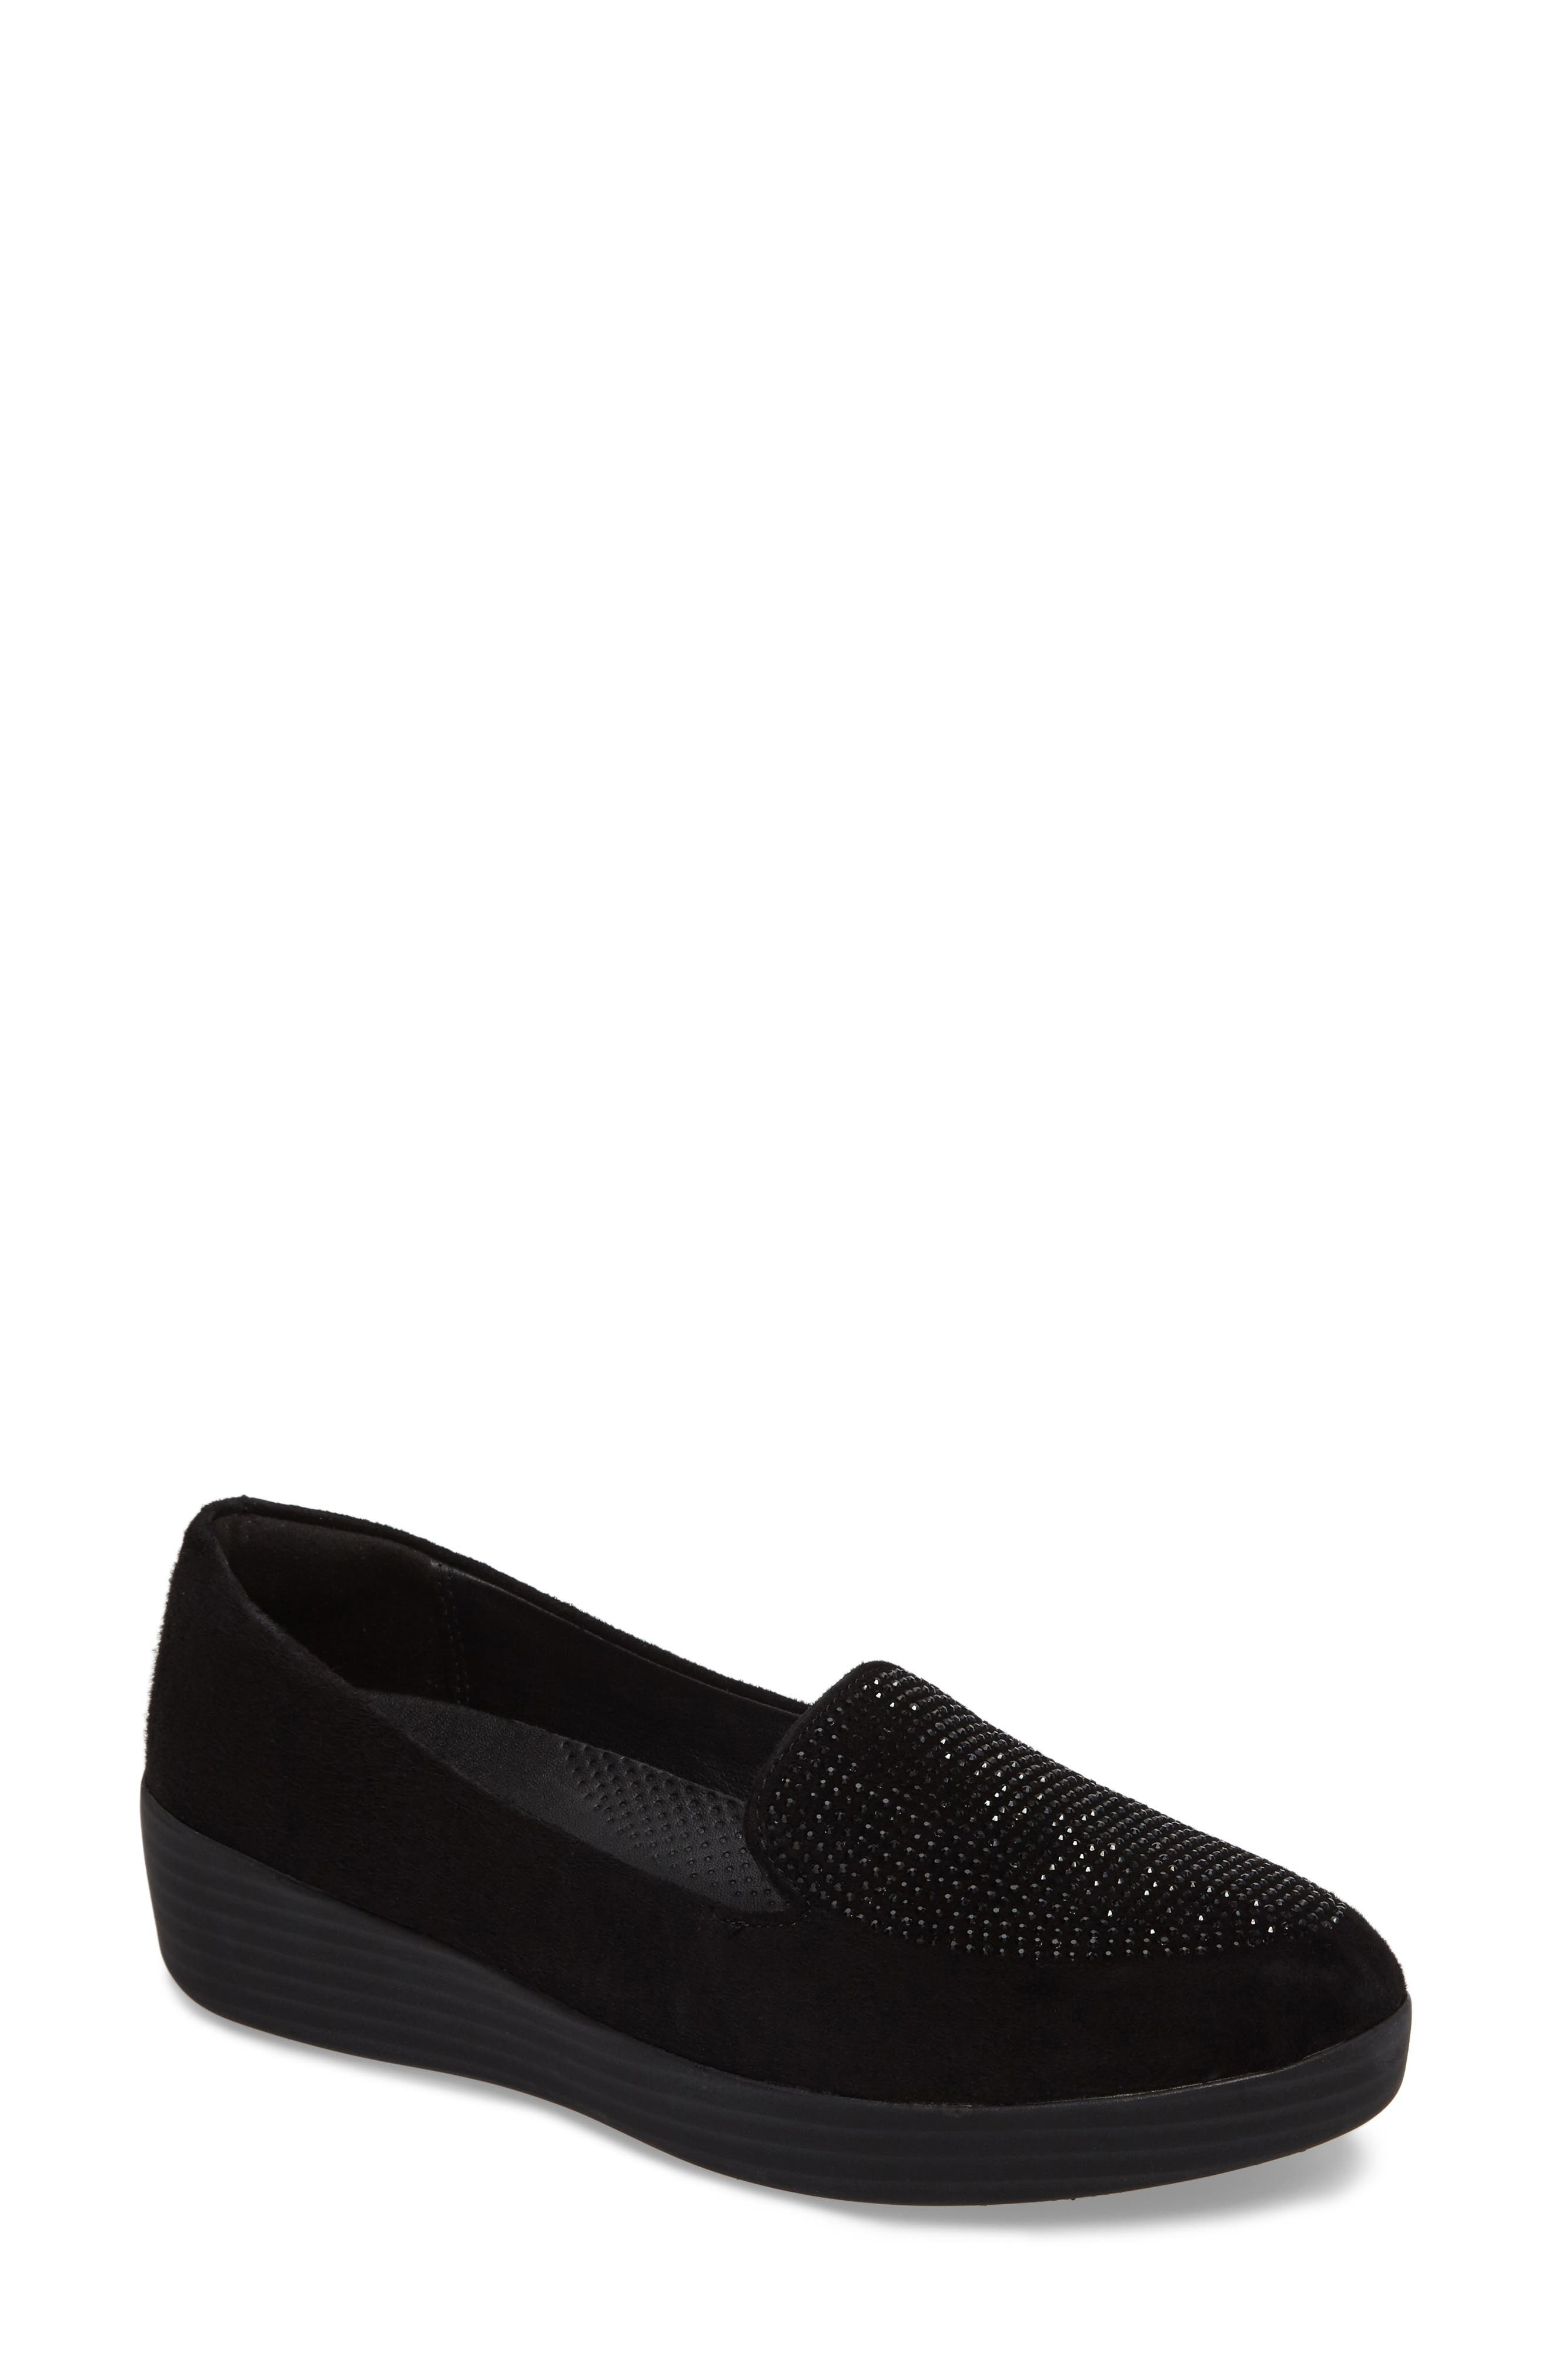 Main Image - FitFlop Sparkly Sneakerloafer Slip-On (Women)